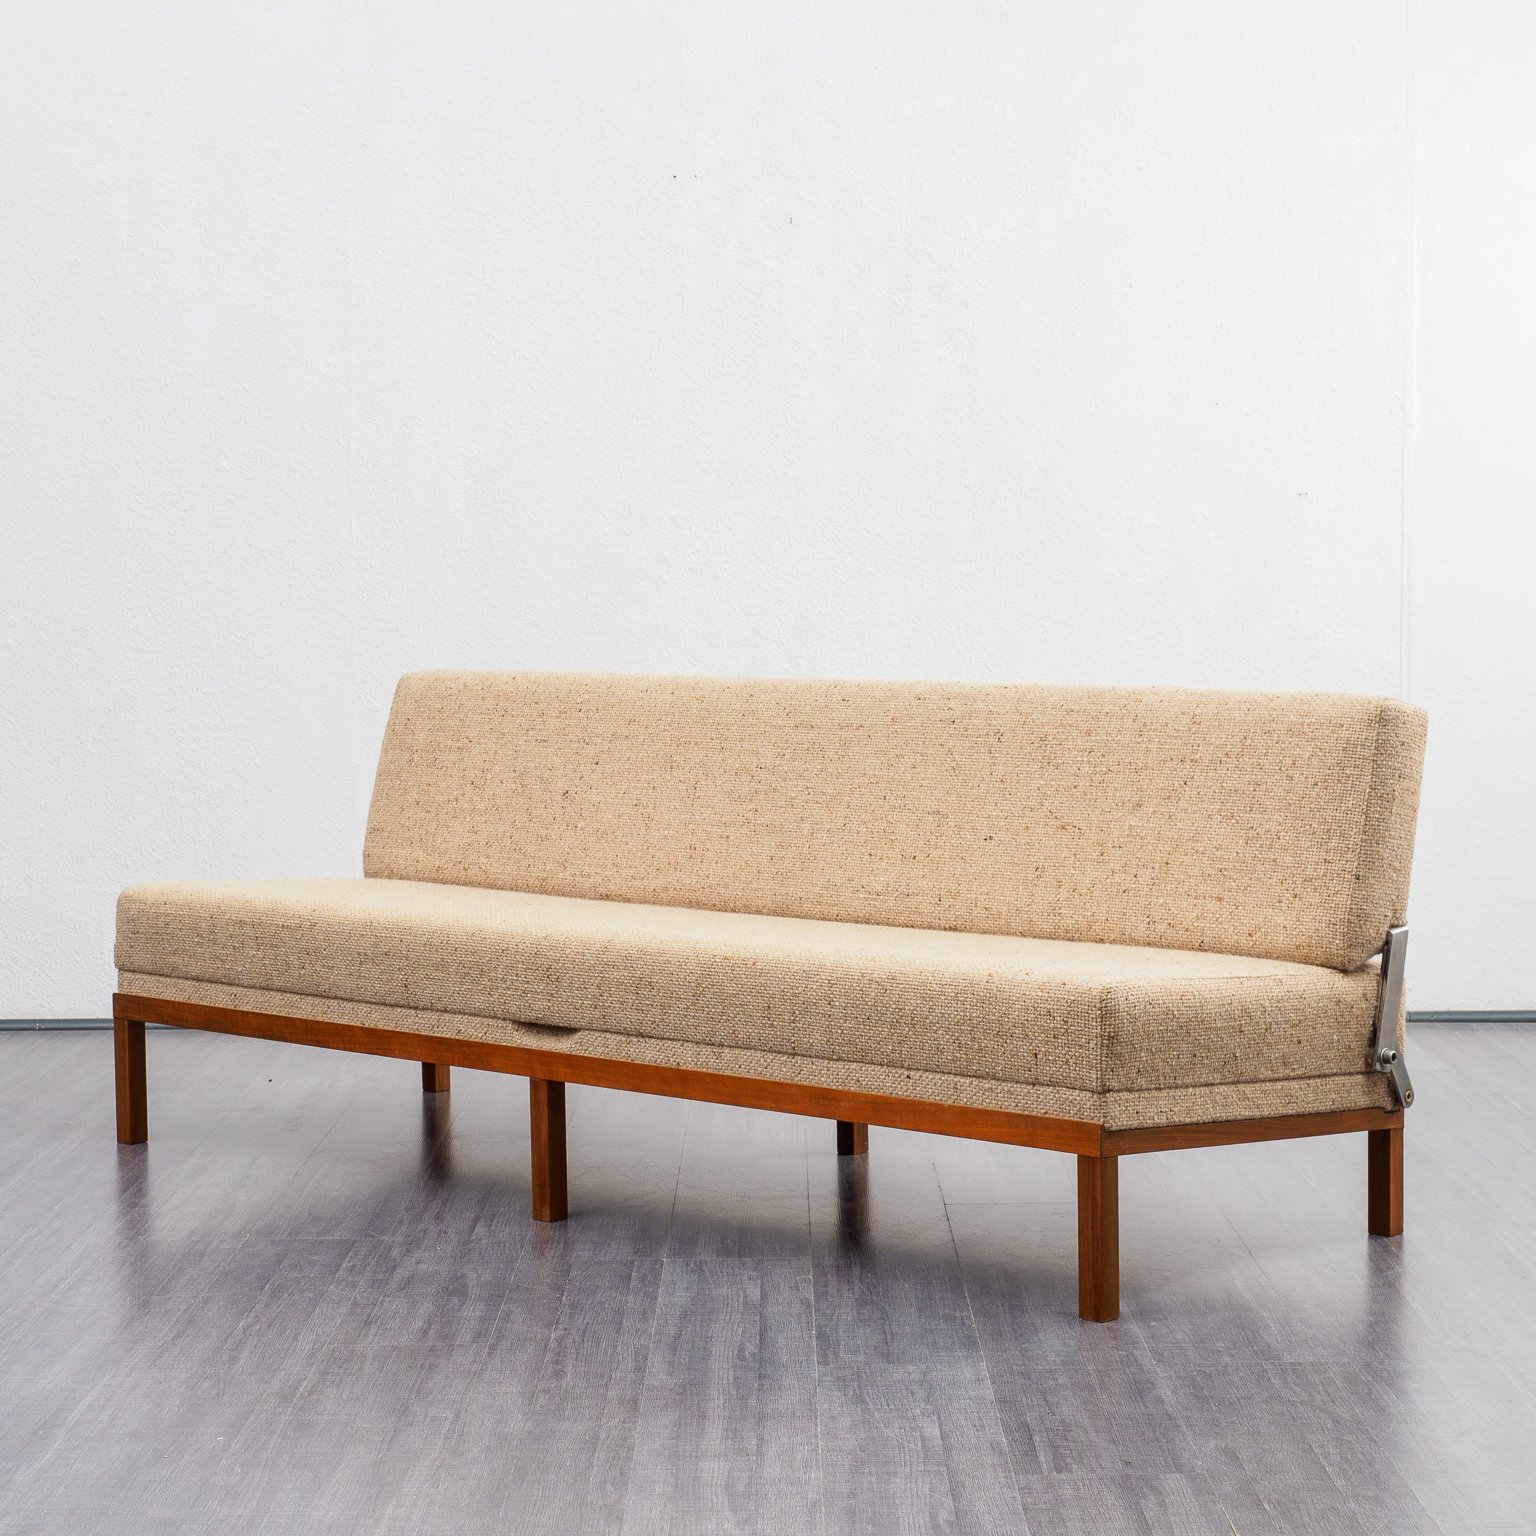 - Midcentury Daybed By Johannes Spalt For Wittmann, Germany 1960s